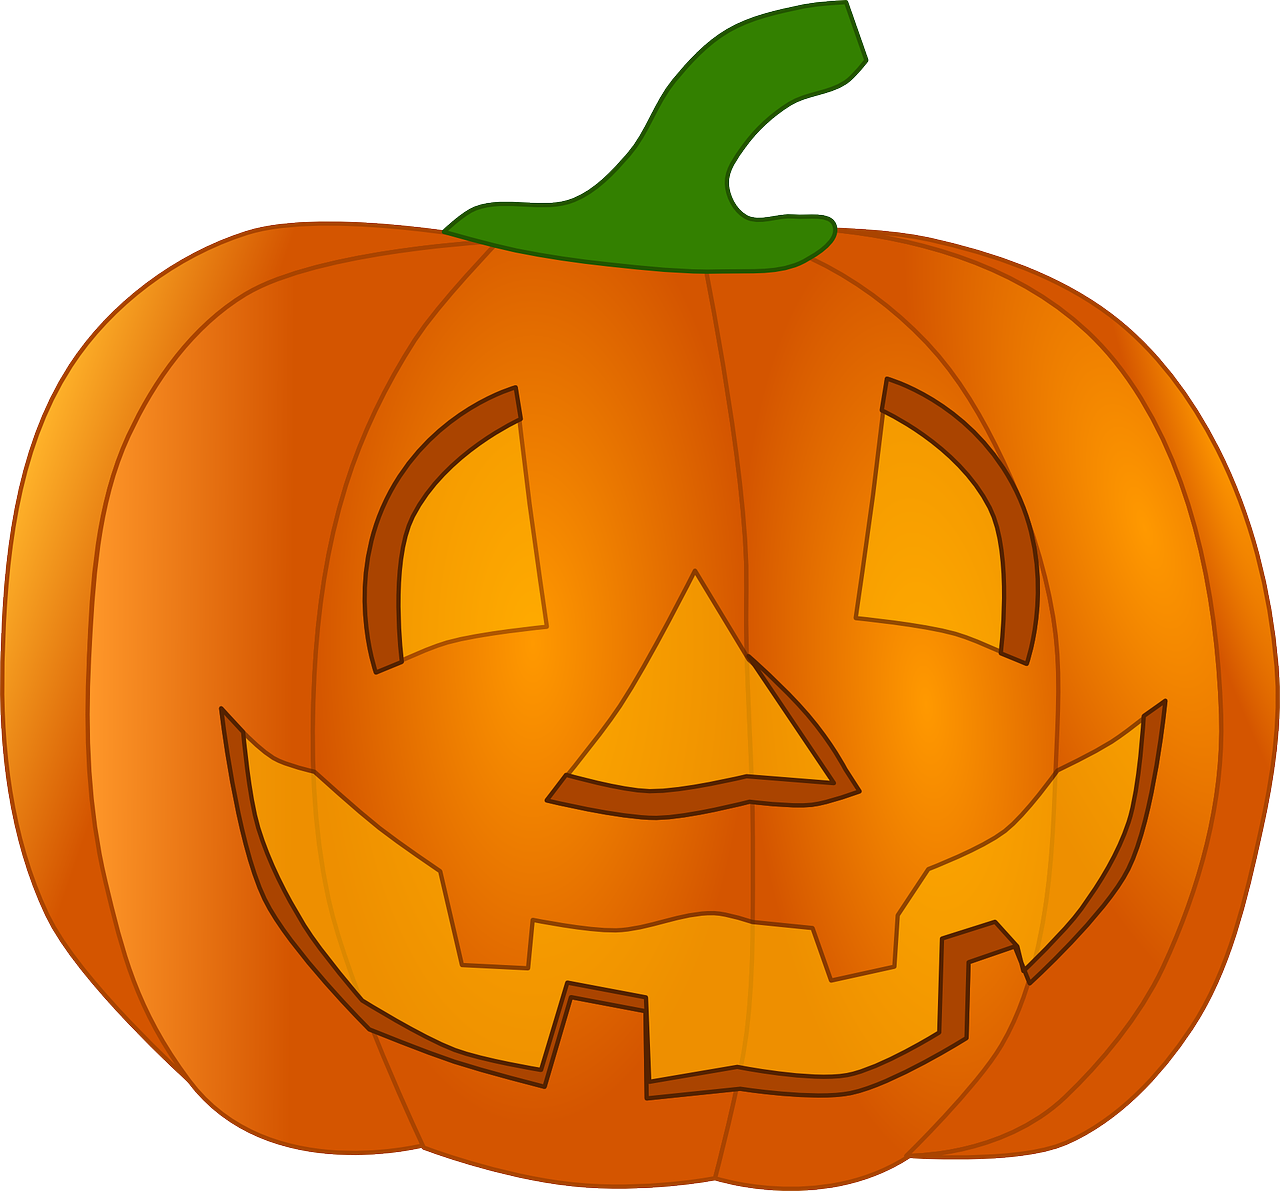 Spalding public library enriching. Broncos vector pumpkin jpg transparent library